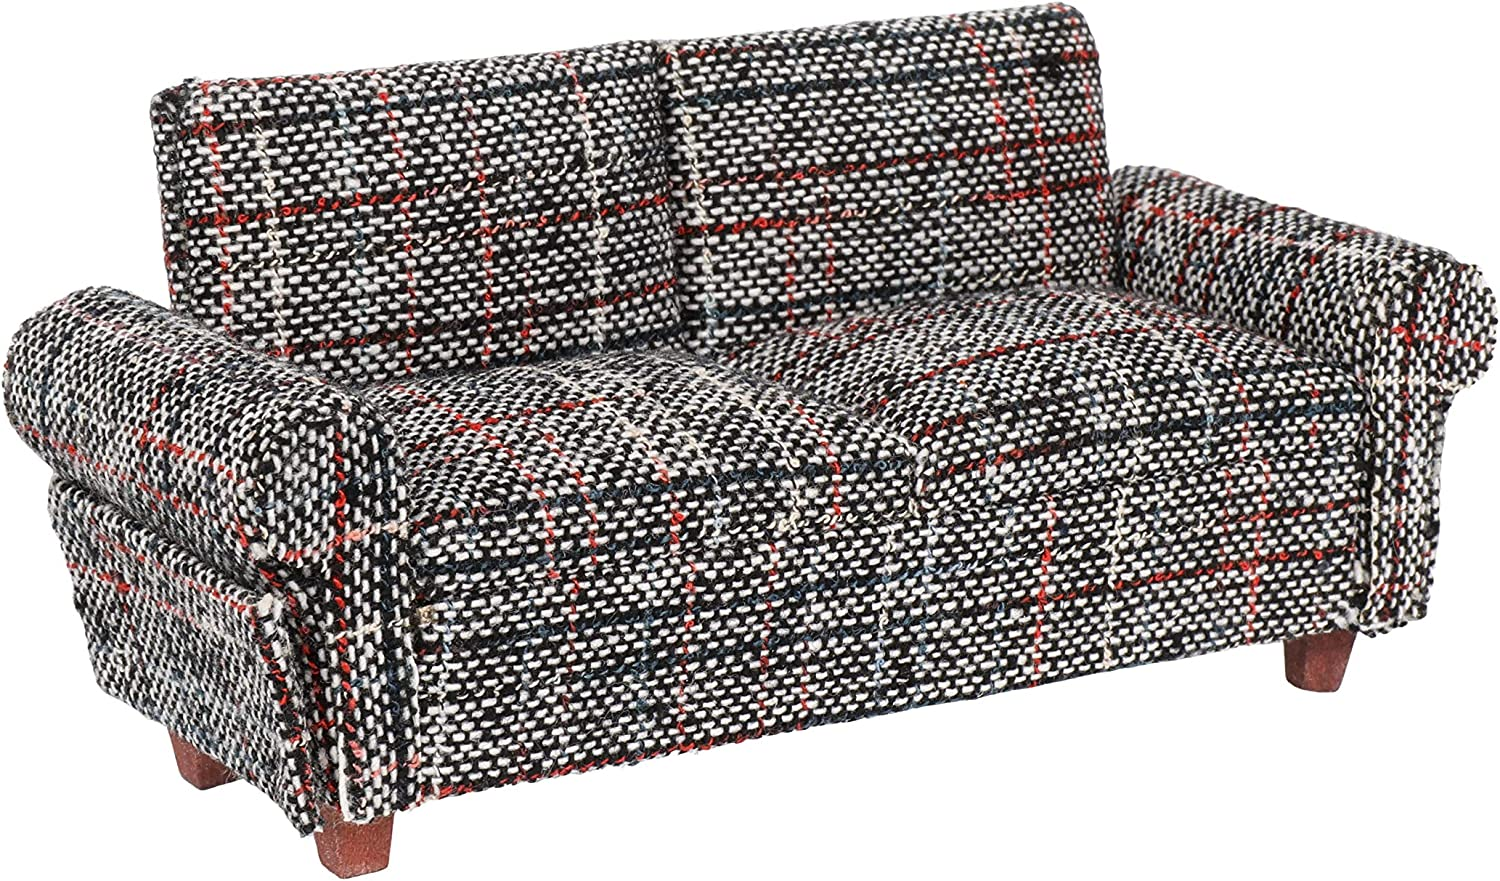 Inusitus Miniature Dollhouse Sofa - Dolls House Furniture Couch - 1/12 Scale (Retro)